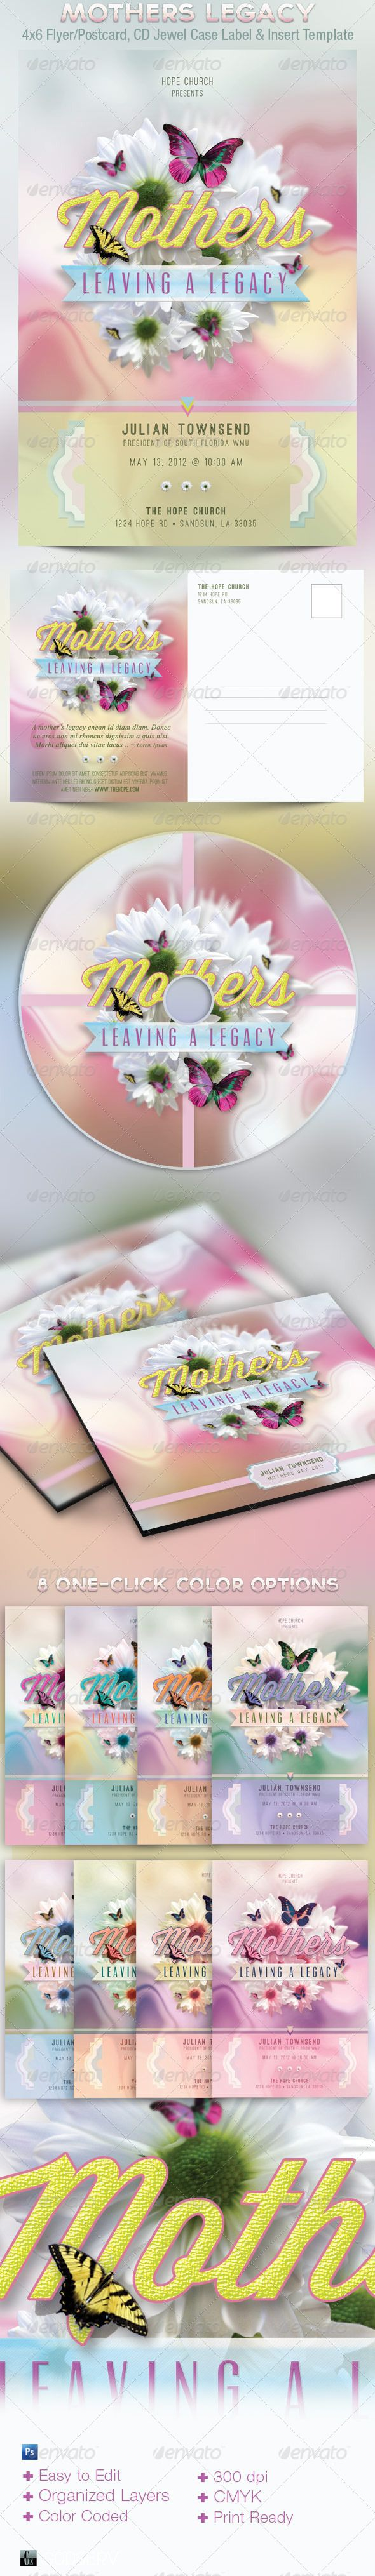 Mothers Leaving A Legacy Flyer and CD TemplateWhite Flower